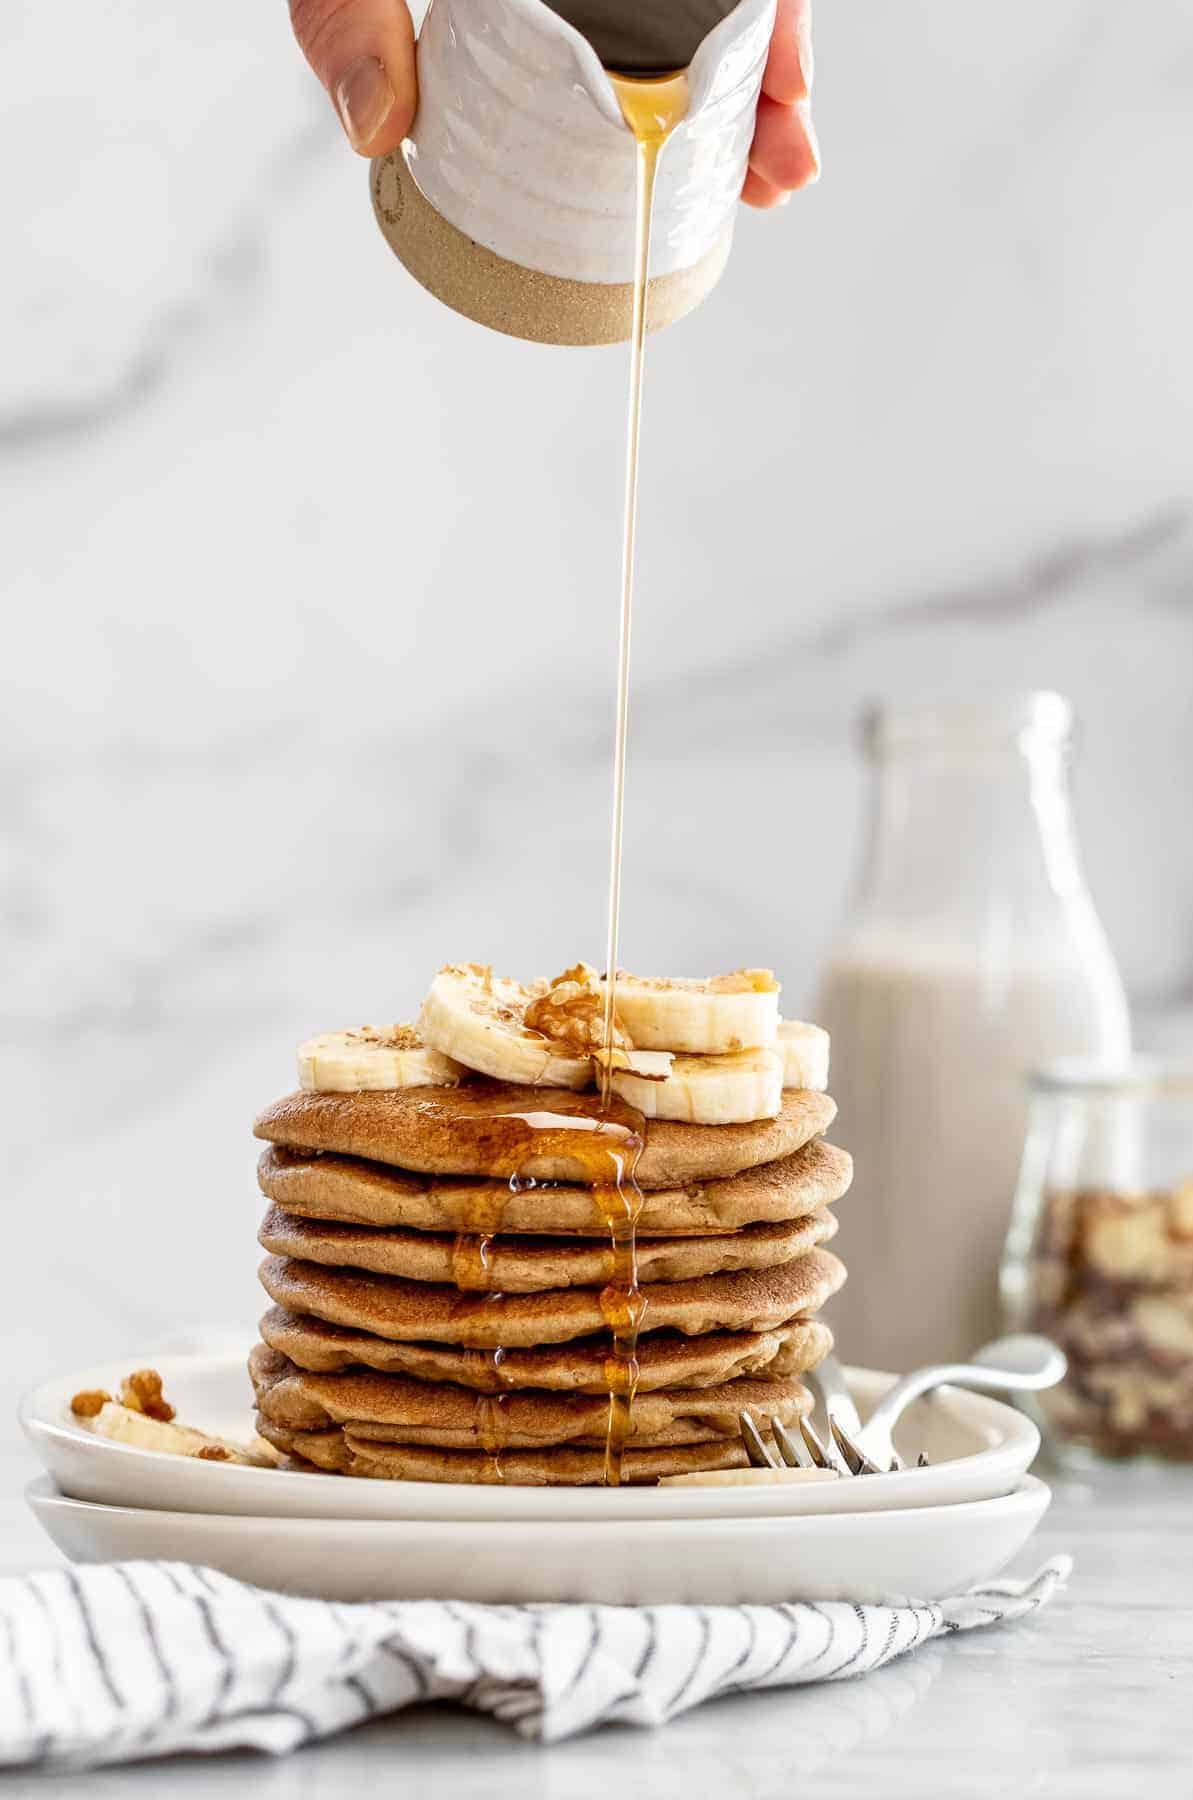 Vegan banana pancakes with maple syrup.